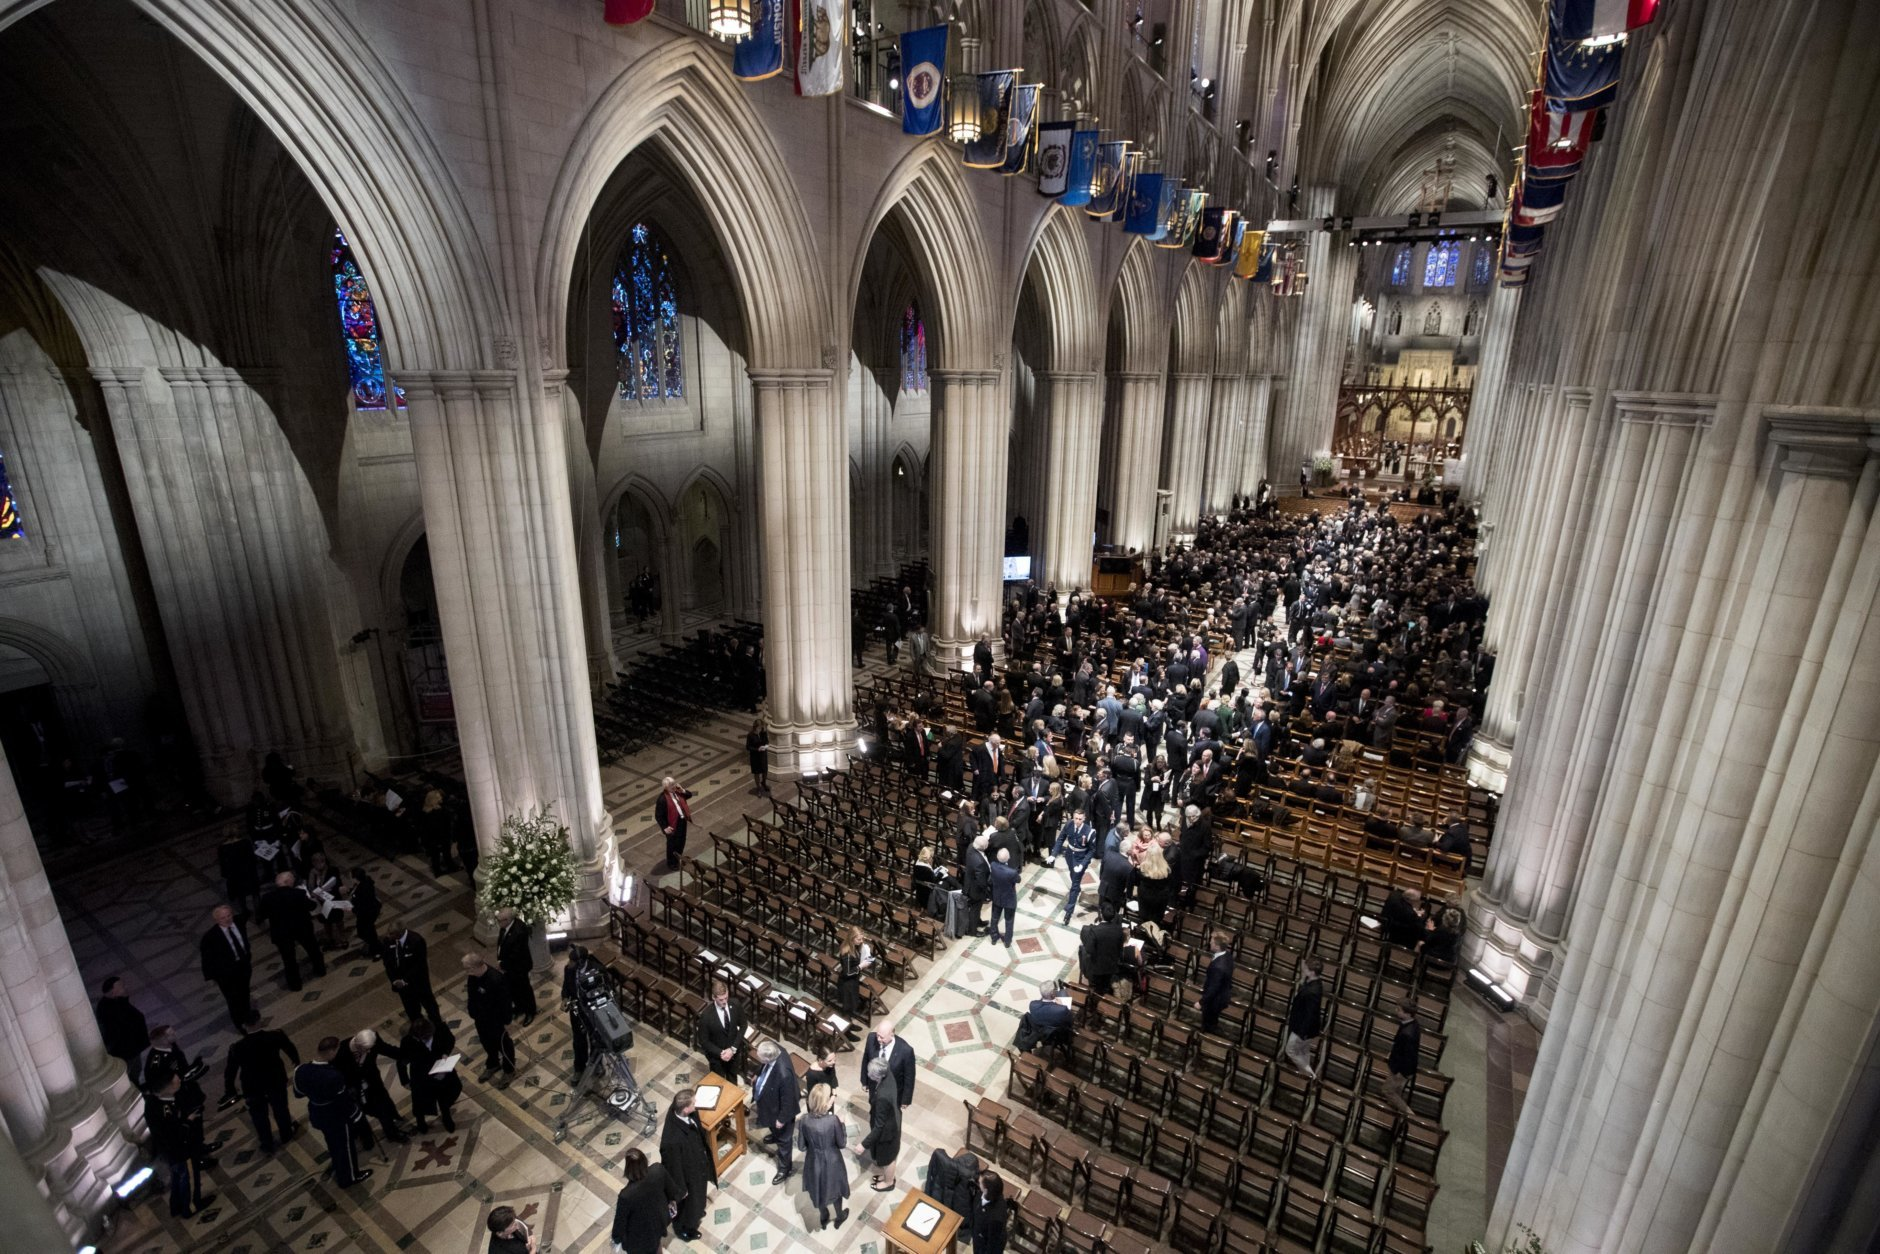 Visitors gather before a State Funeral for former President George H.W. Bush at the National Cathedral, Wednesday, Dec. 5, 2018,  in Washington. (Photo by Andrew Harnik - Pool/Getty)